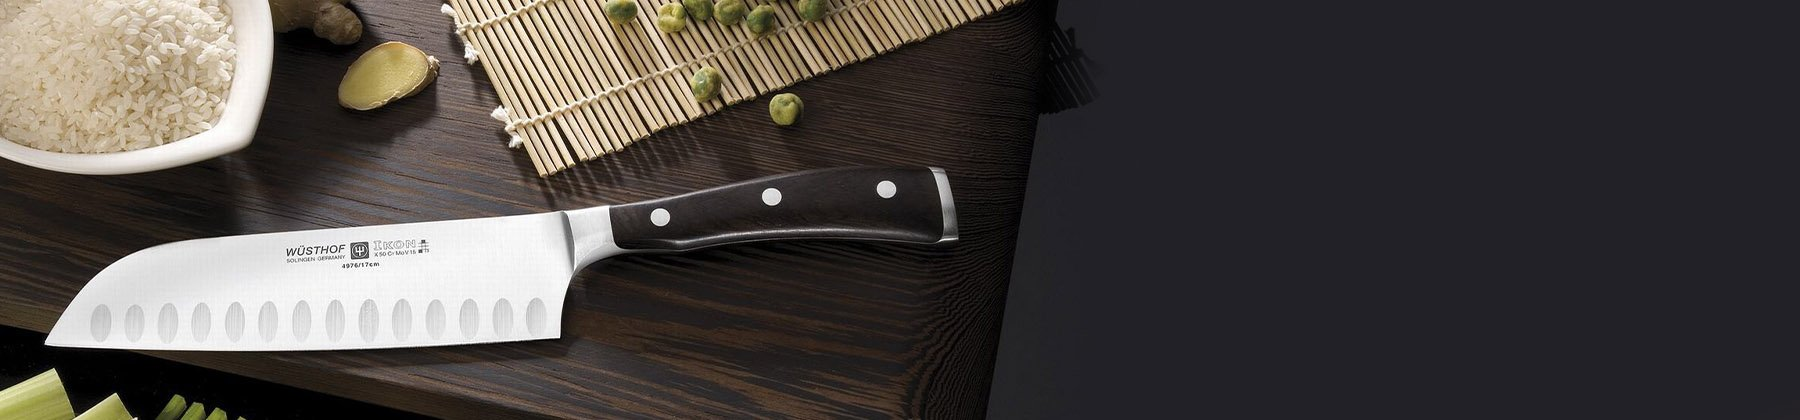 Photo of japanese knives.